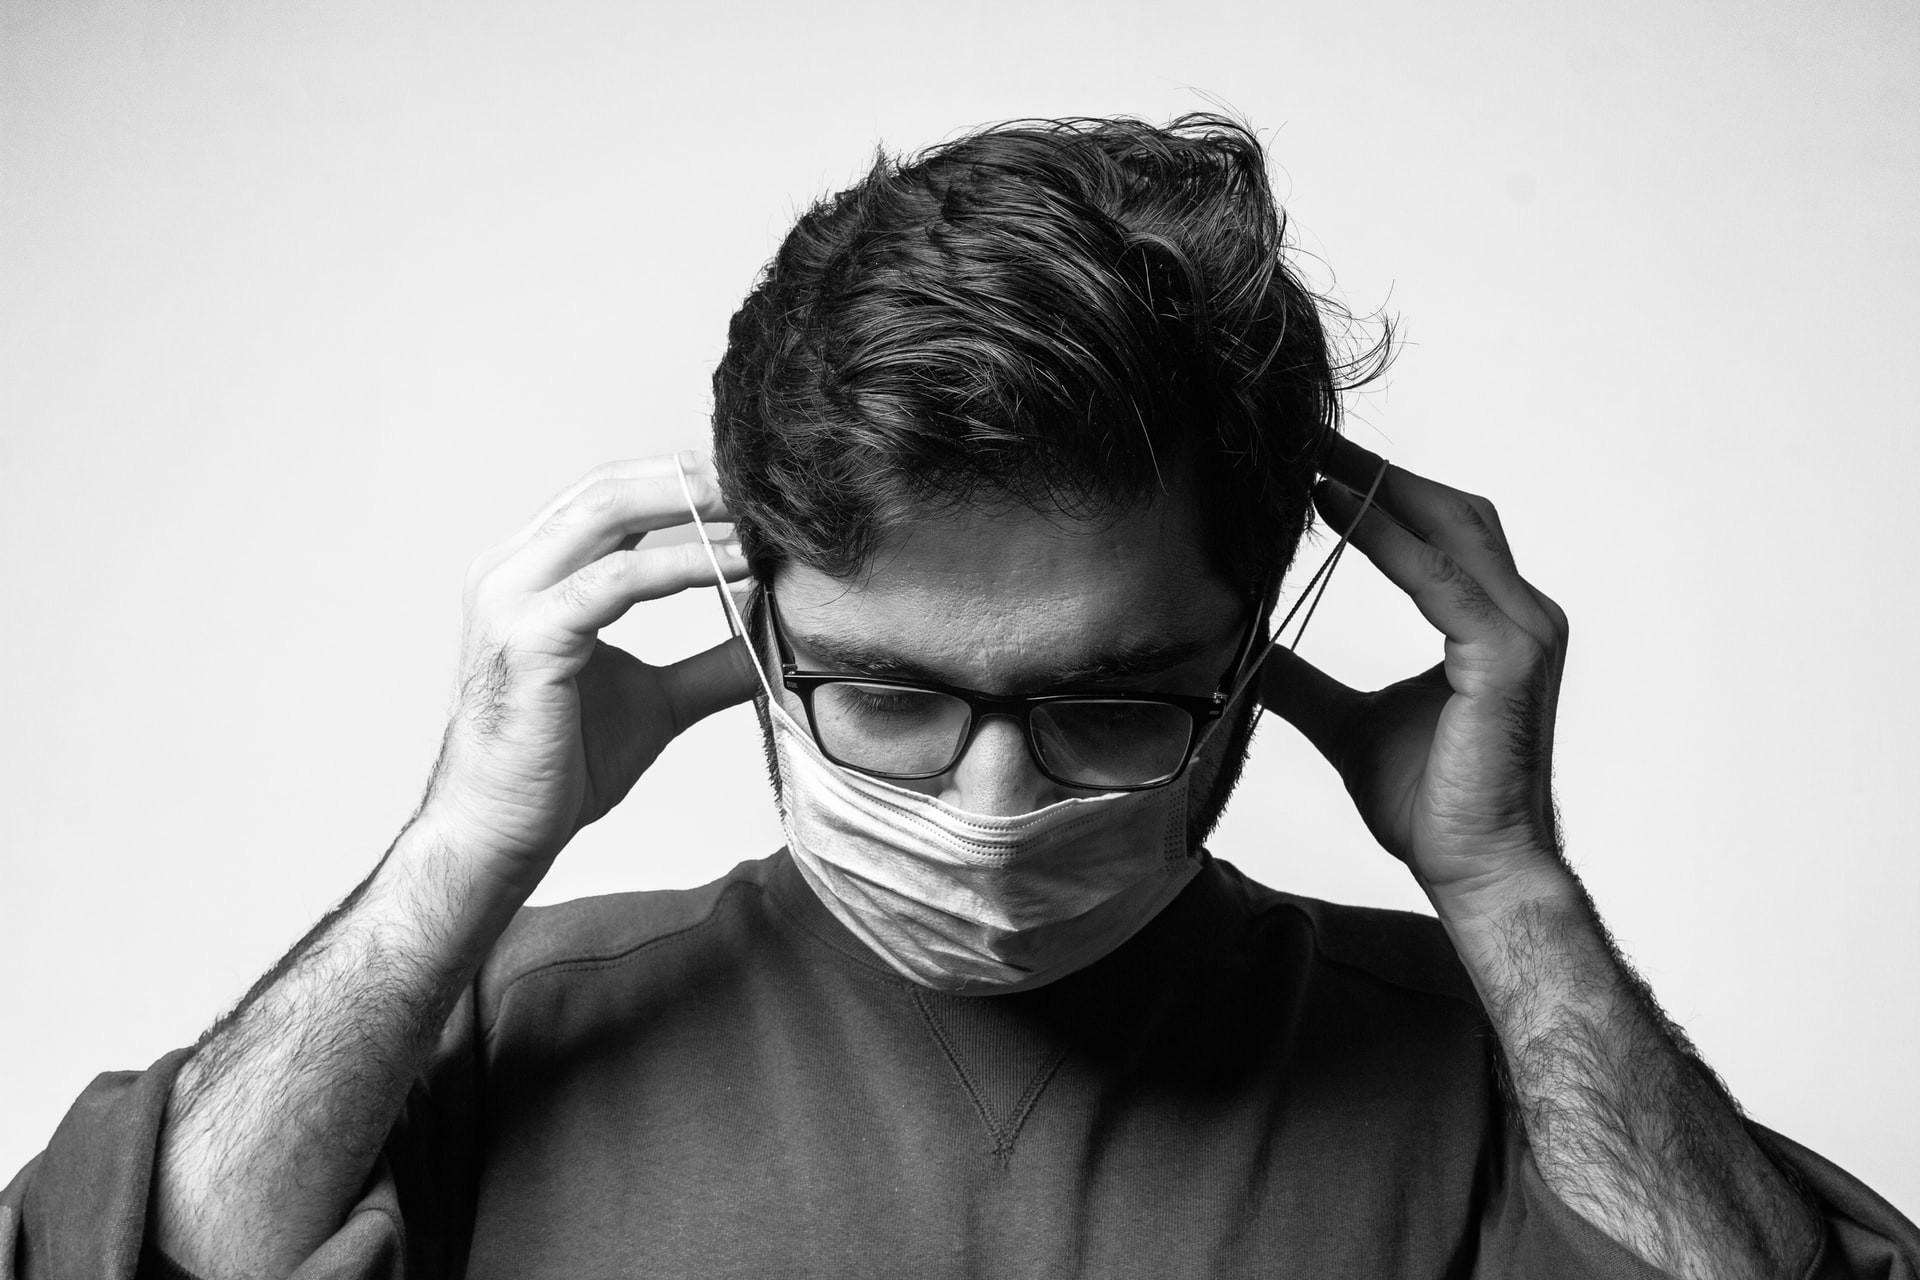 Man putting on face mask. Black and white photo.